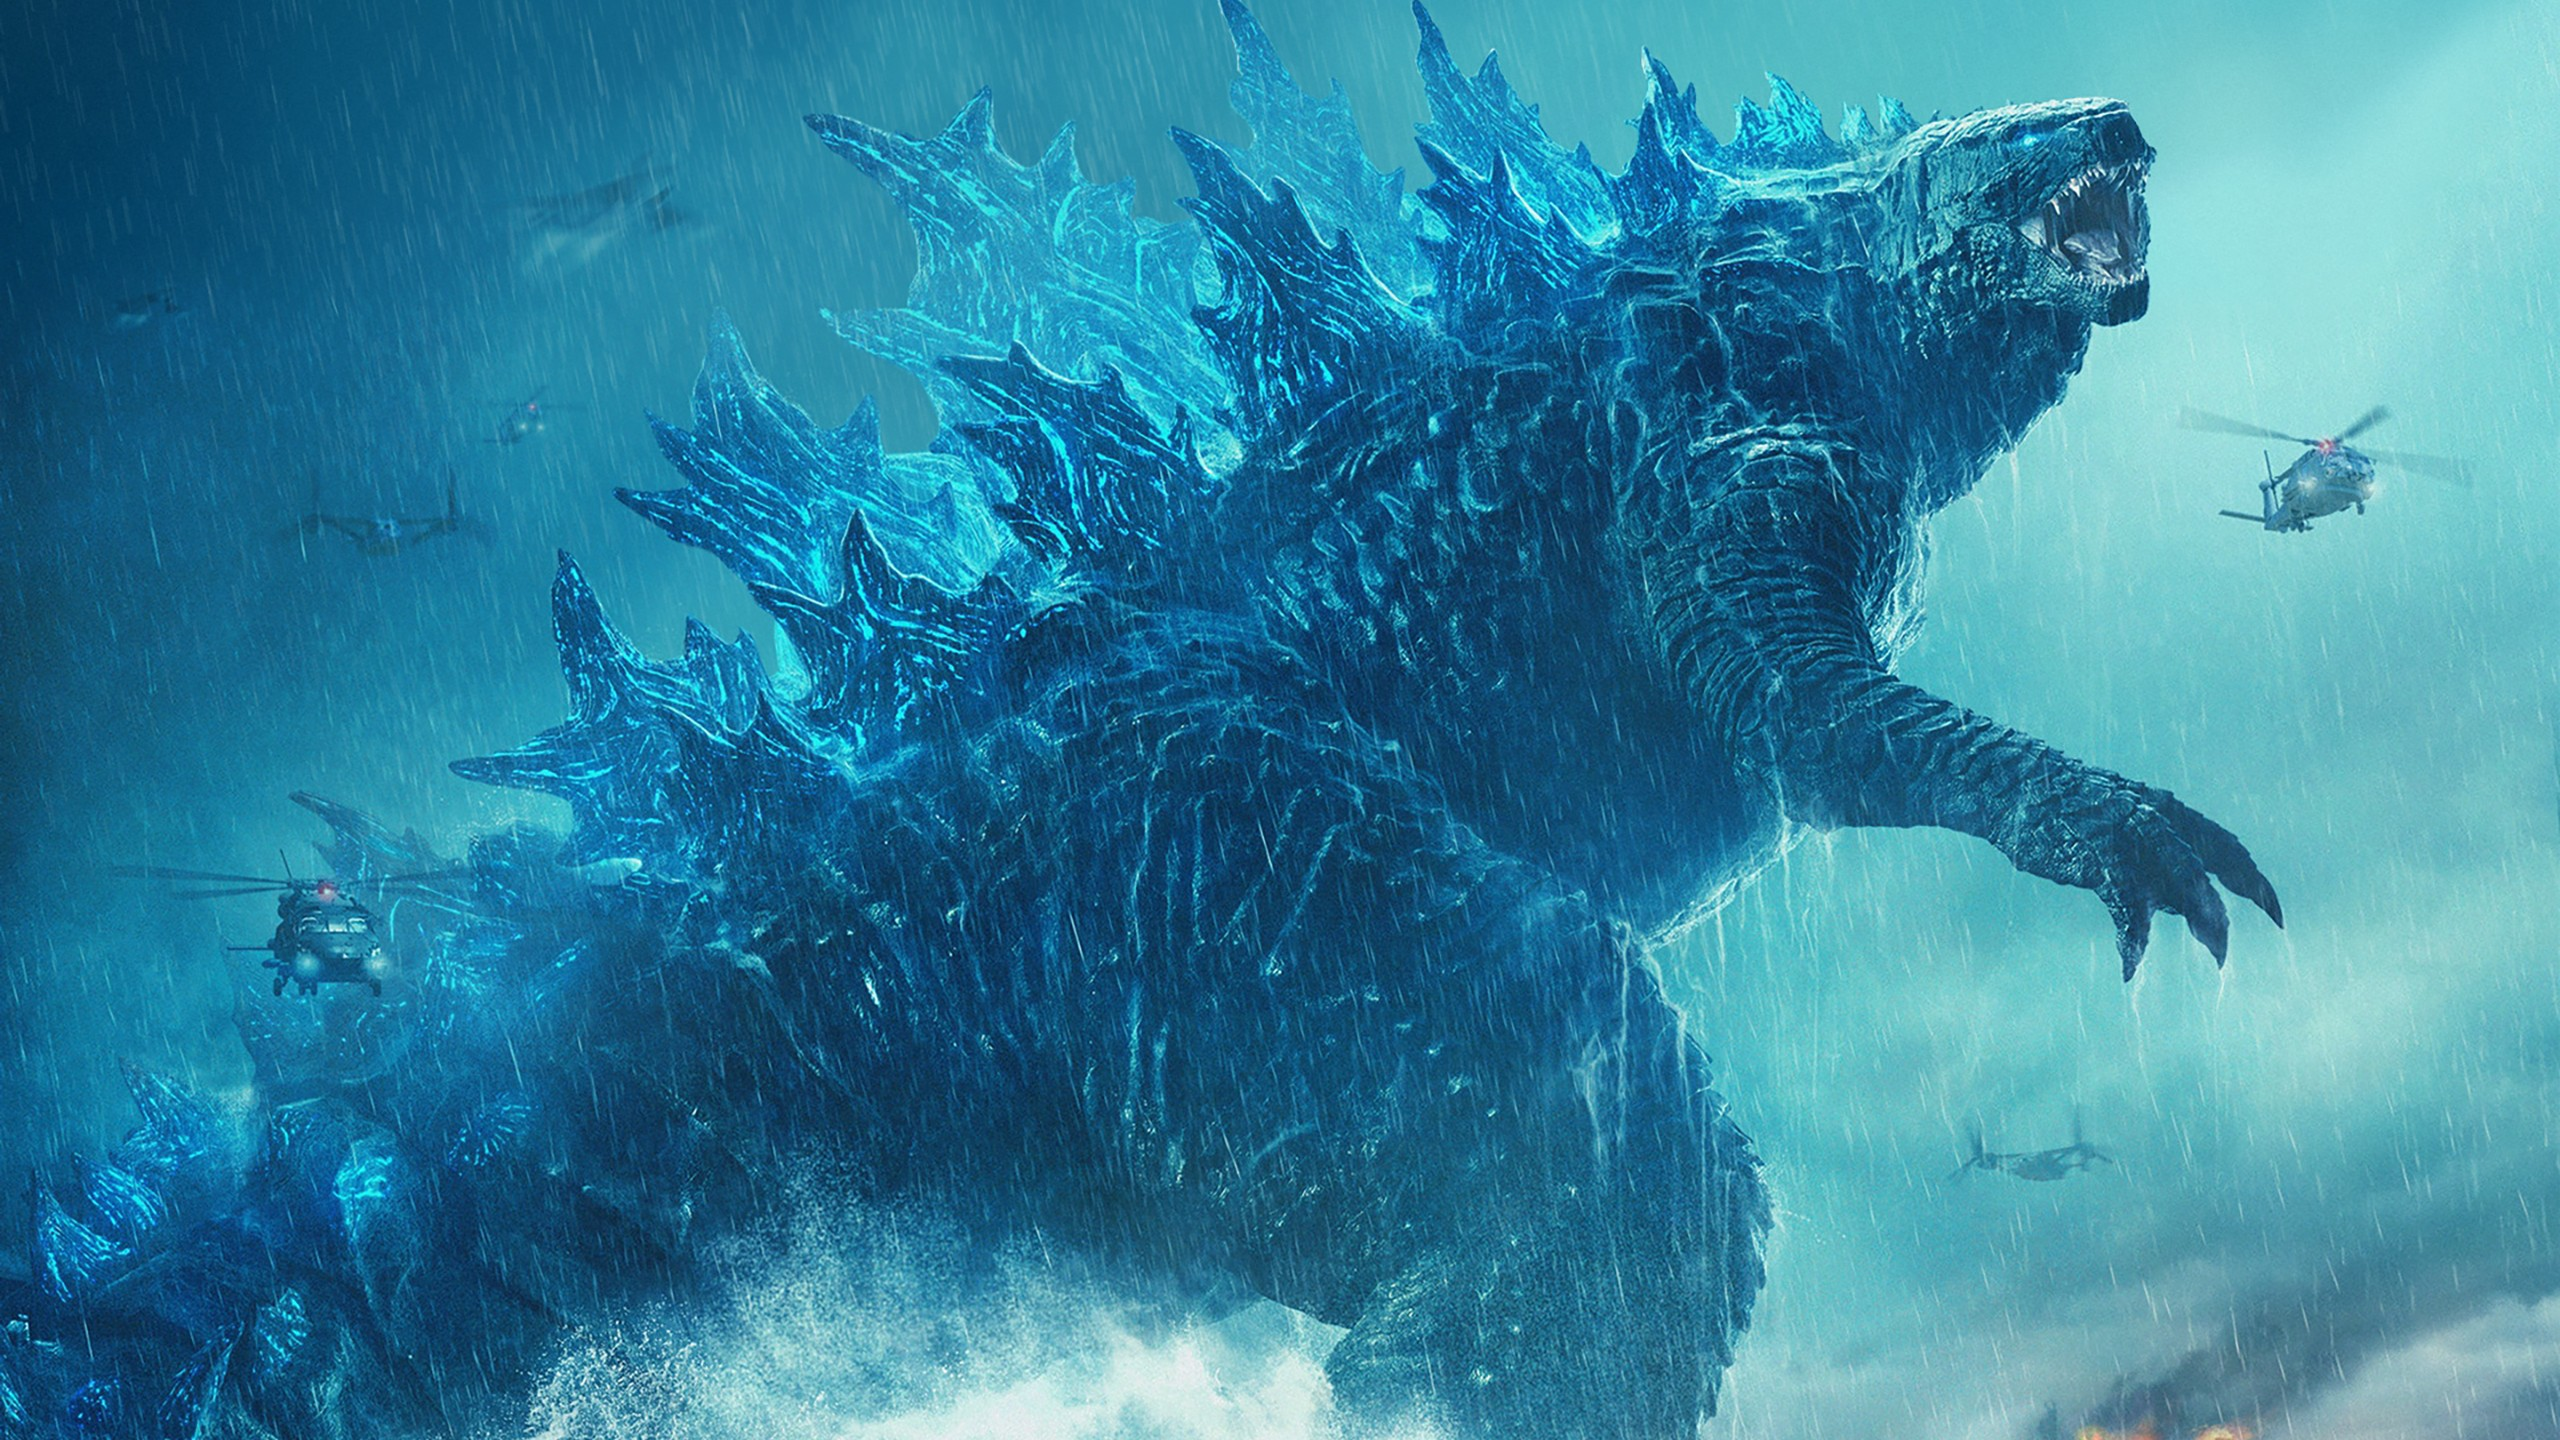 Apple Live Wallpaper Iphone 6 Godzilla King Of The Monsters 2019 Wallpapers Hd Wallpapers